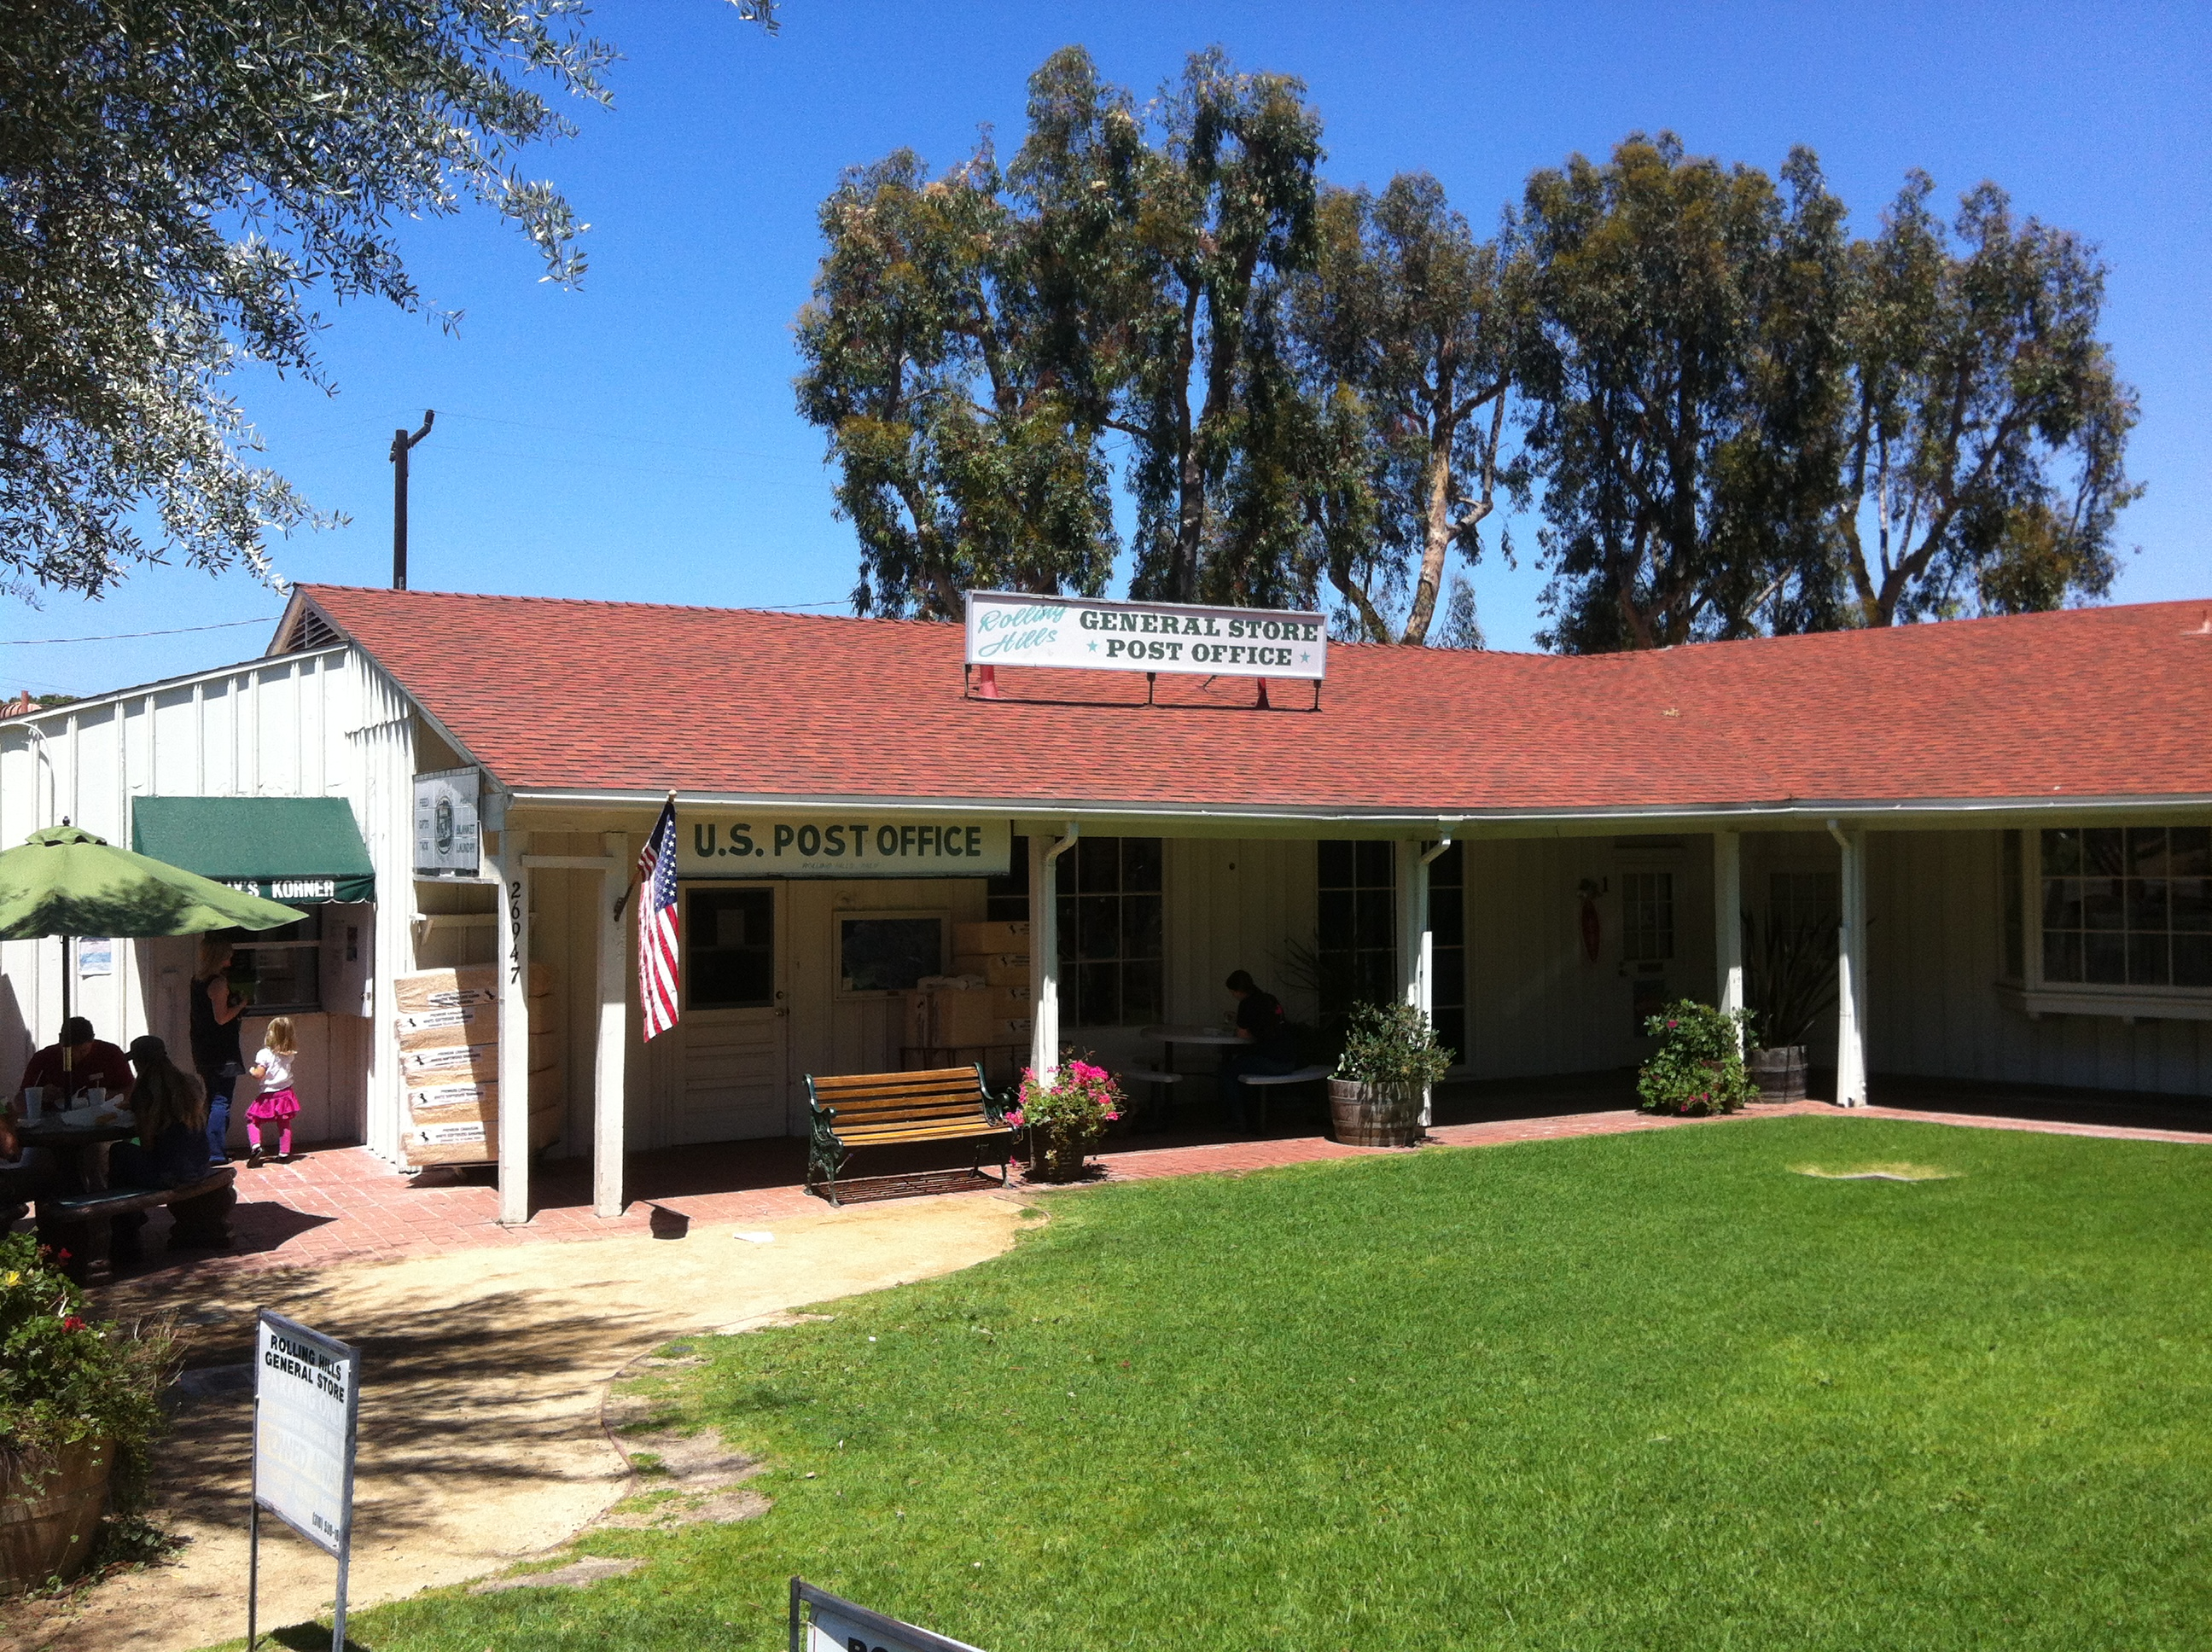 The Rolling Hills General Store in Palos Verdes CA - 2013